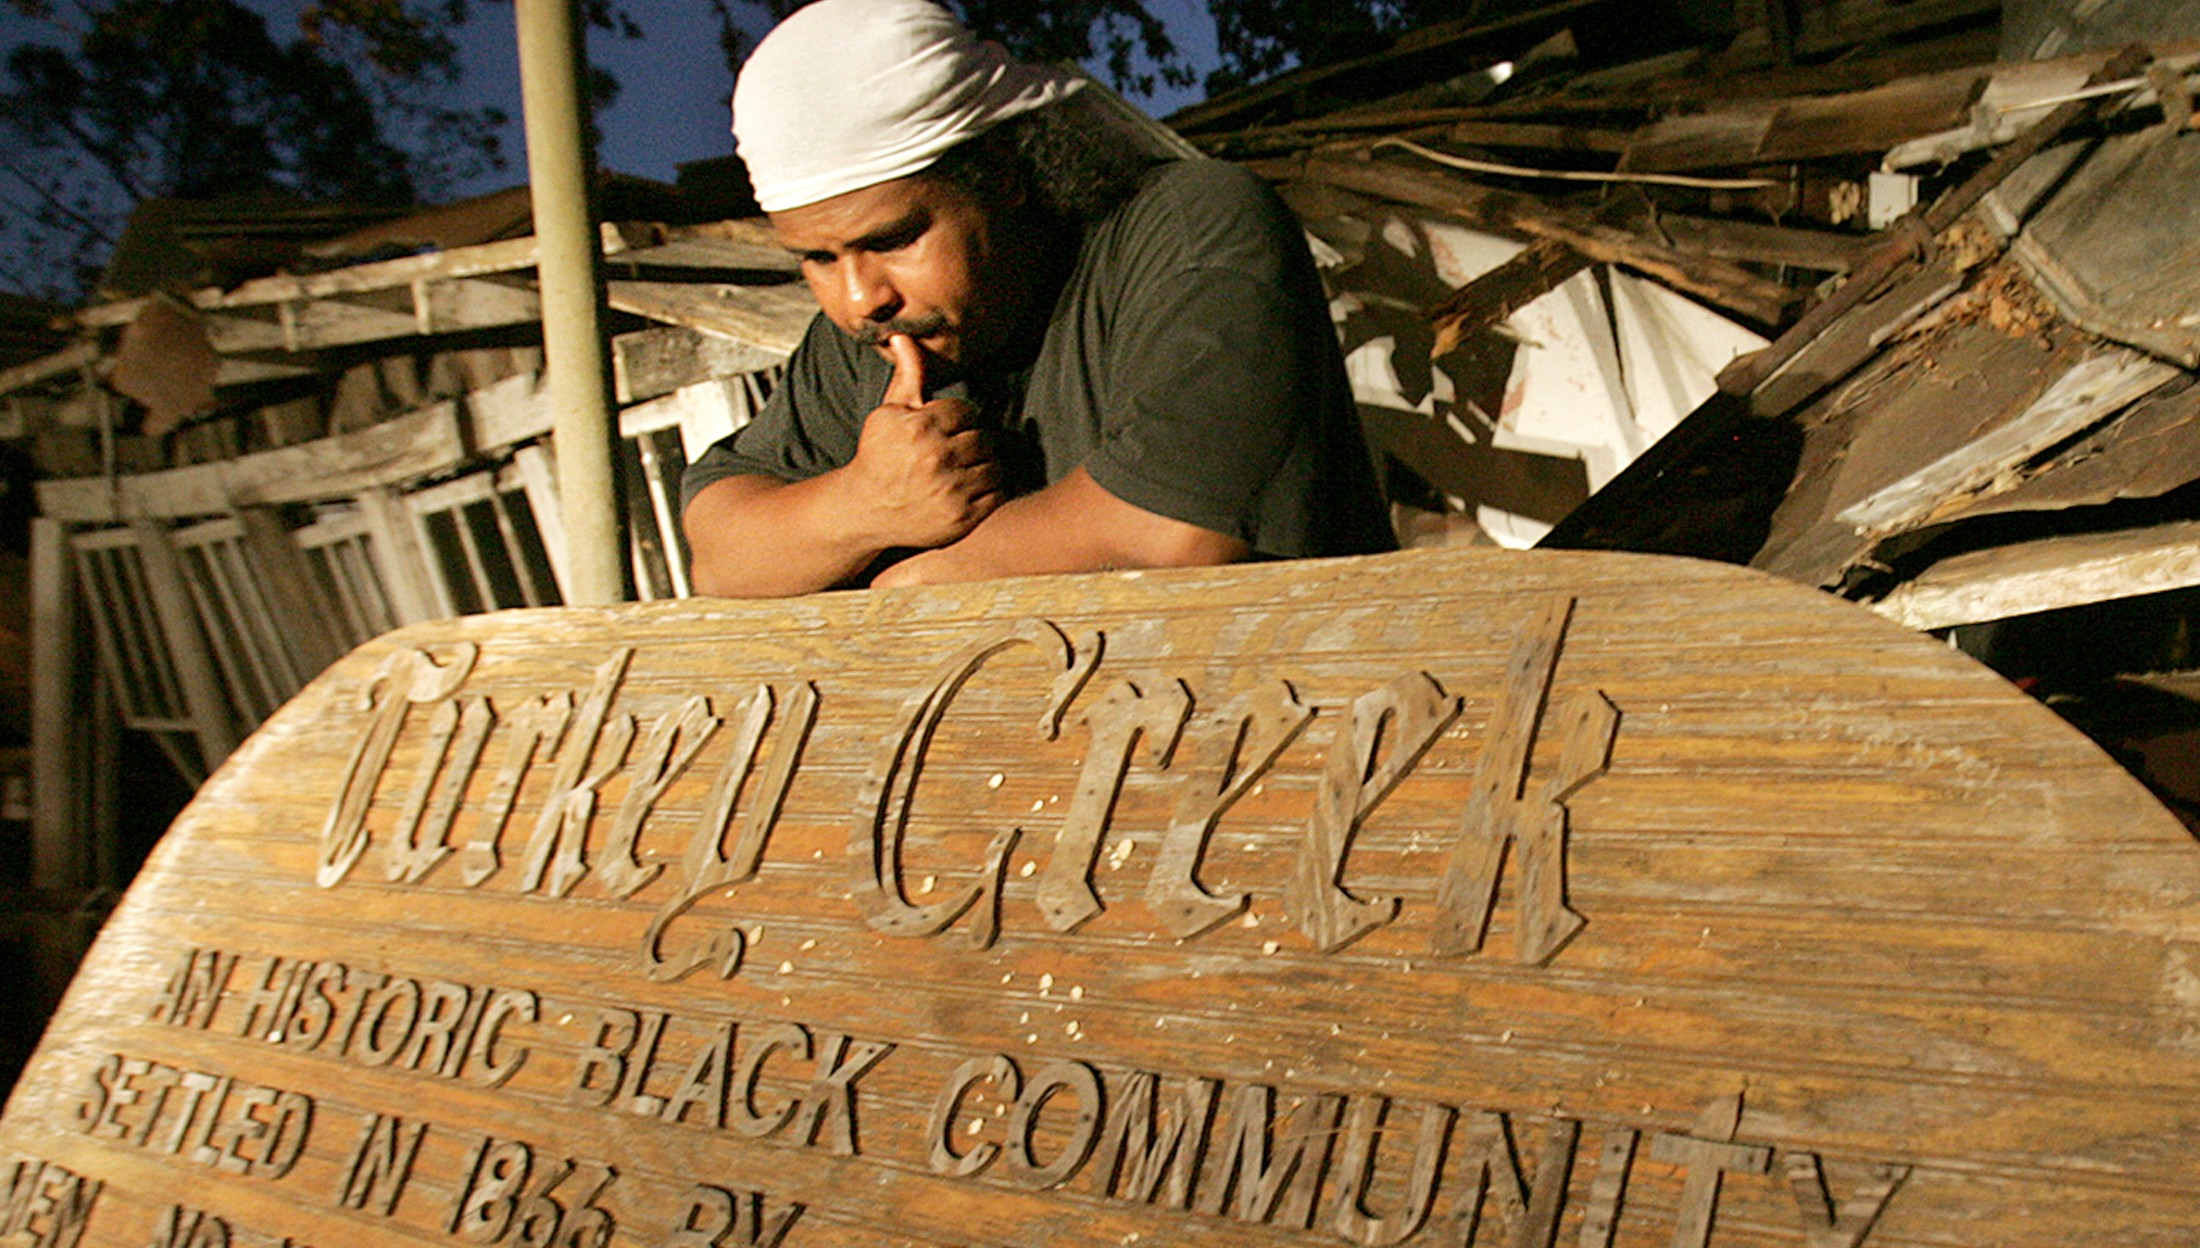 Come Hell Or High Water - Come Hell or High Water: The Battle for Turkey Creek follows the painful but inspiring journey of Derrick Evans, a Boston teacher who returns to his native coastal Mississippi when the graves of his ancestors are bulldozed to make way for the sprawling city of Gulfport.